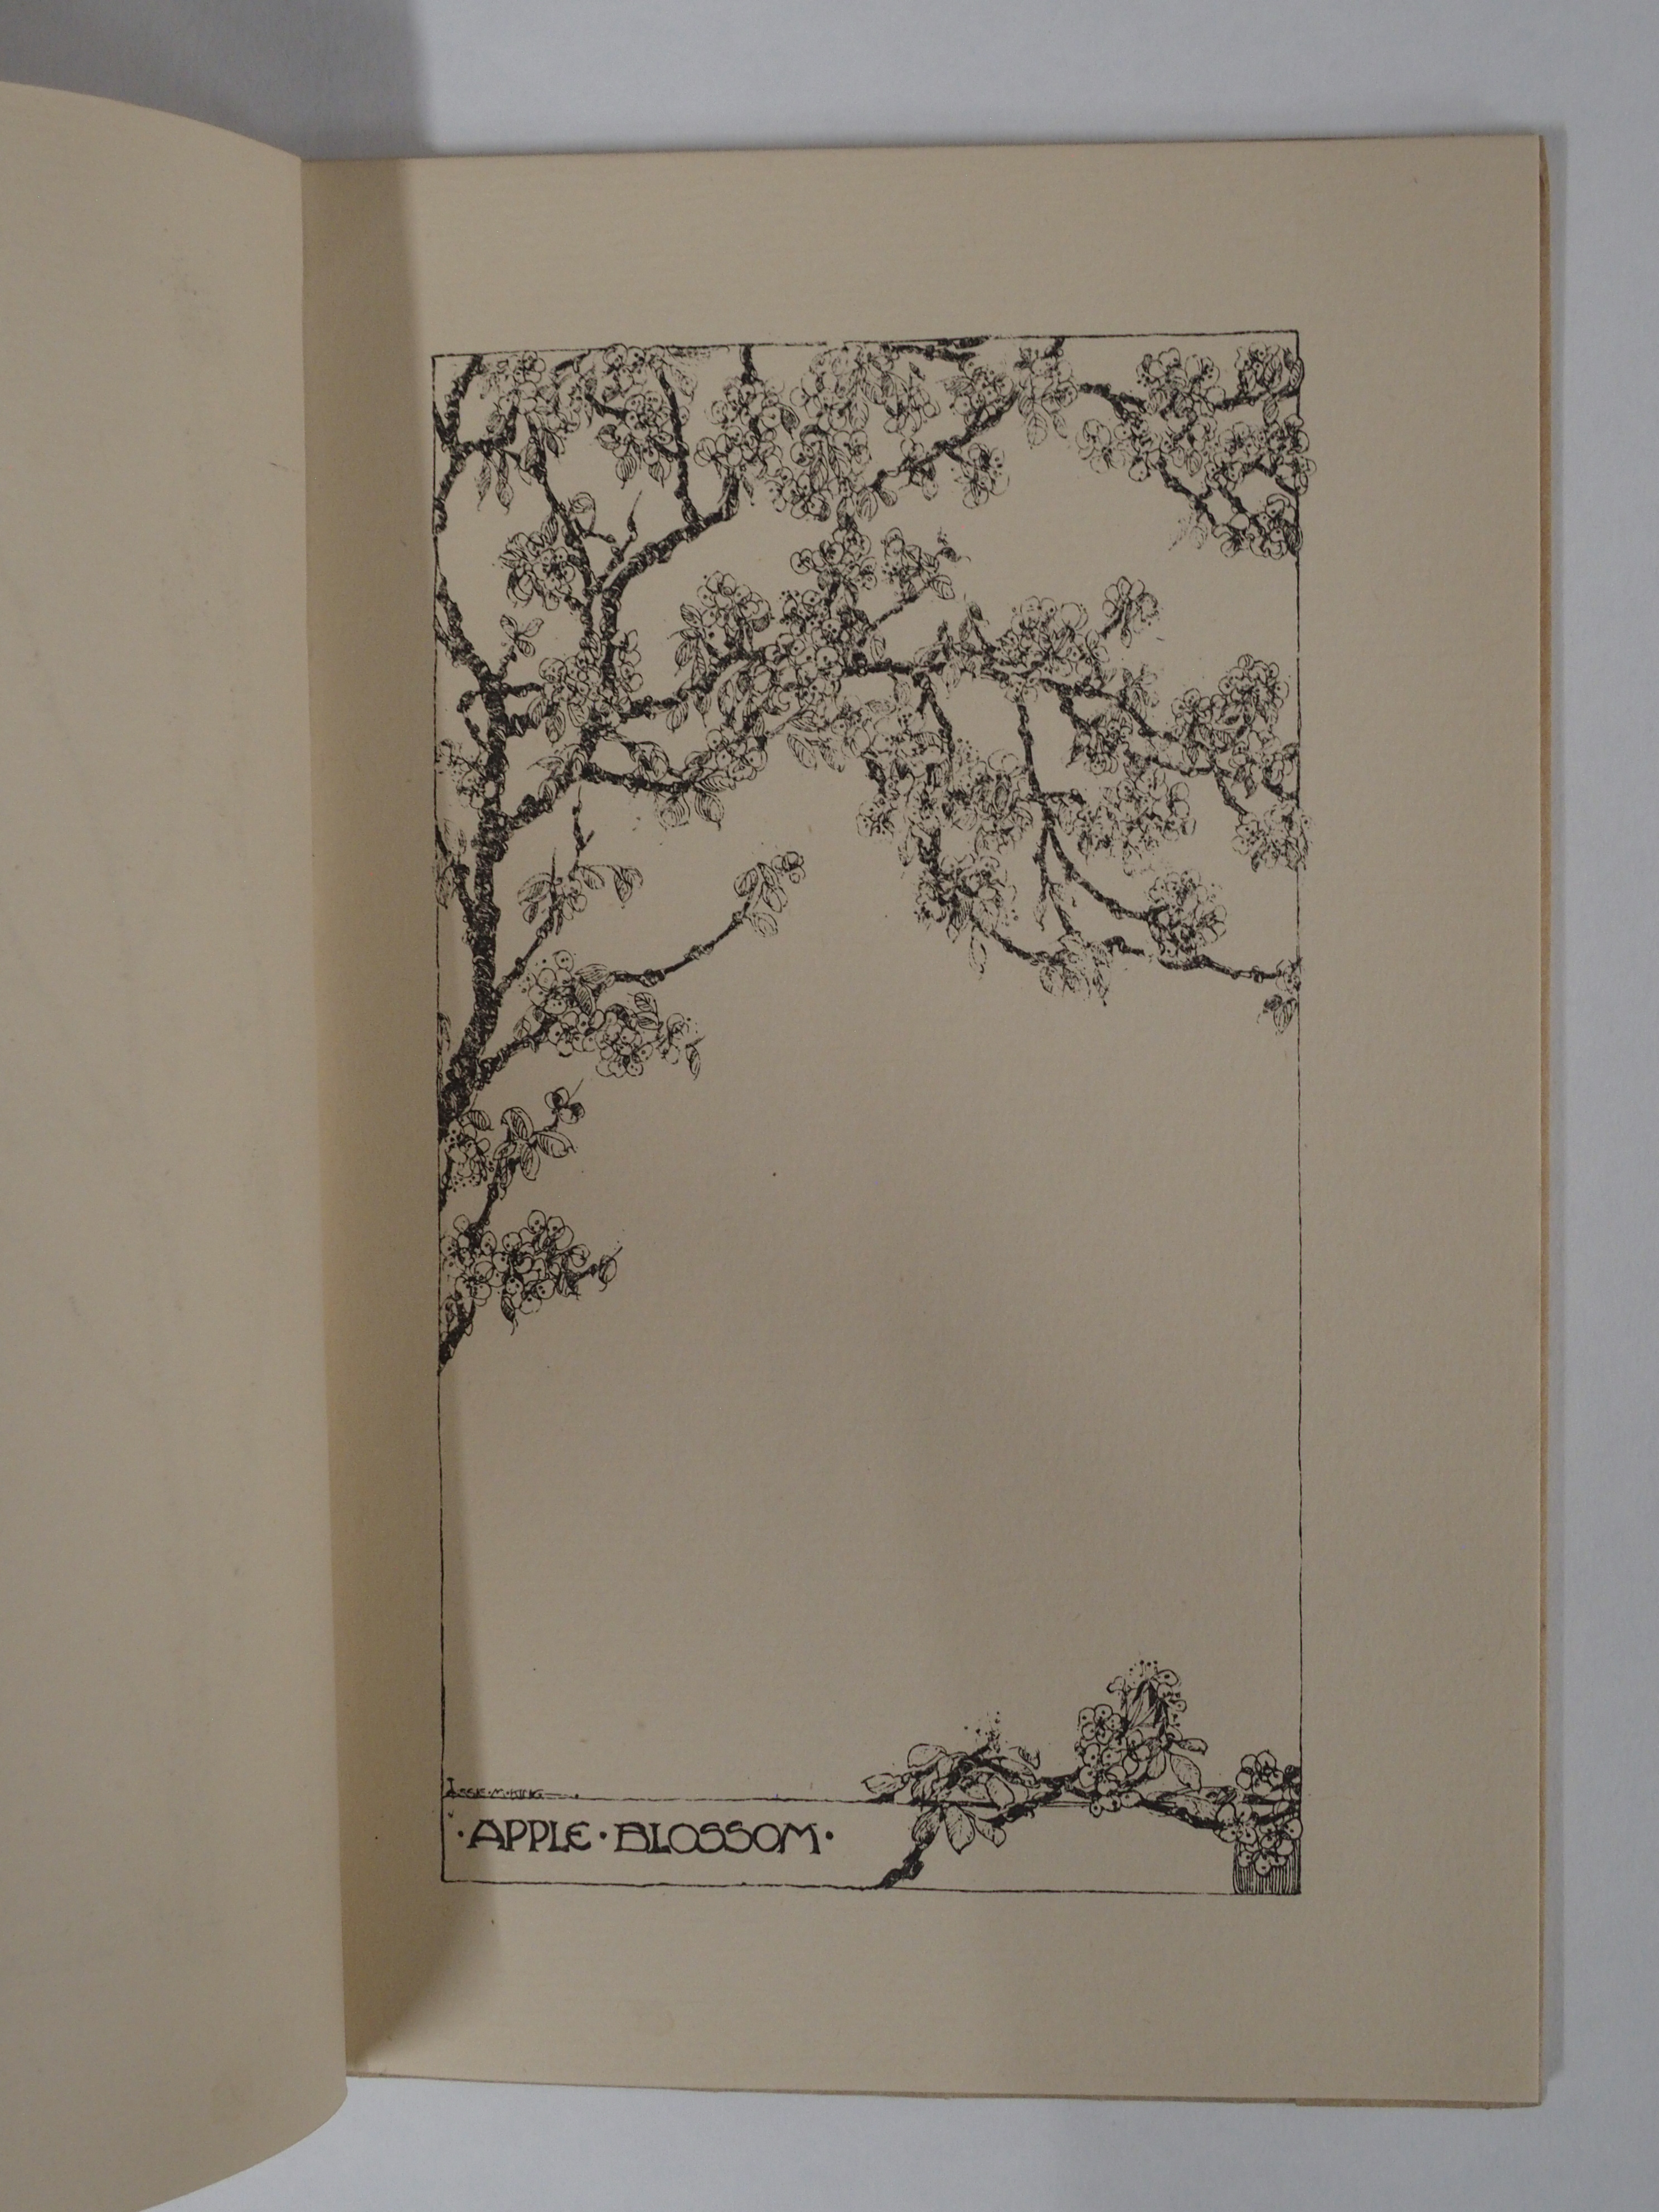 •A COLLECTION TO INCLUDE DRAWINGS, GREETINGS CARDS AND A BOOK ROBERT LEISHMAN 'Bob', inscribed, - Image 10 of 11